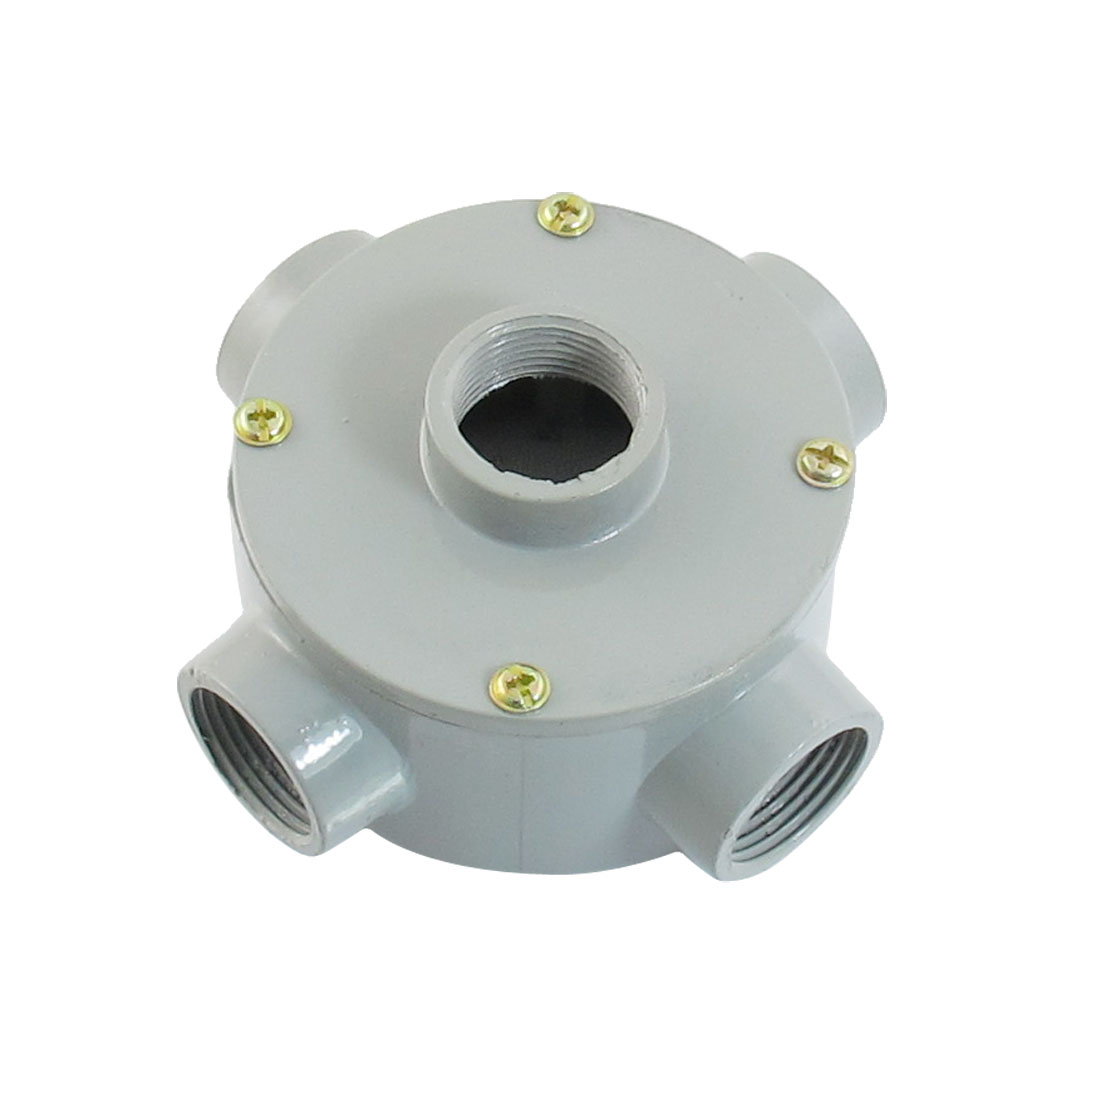 "G3/4"" Thread Five Holes Conduit Wiring Round Metal Junction Box"